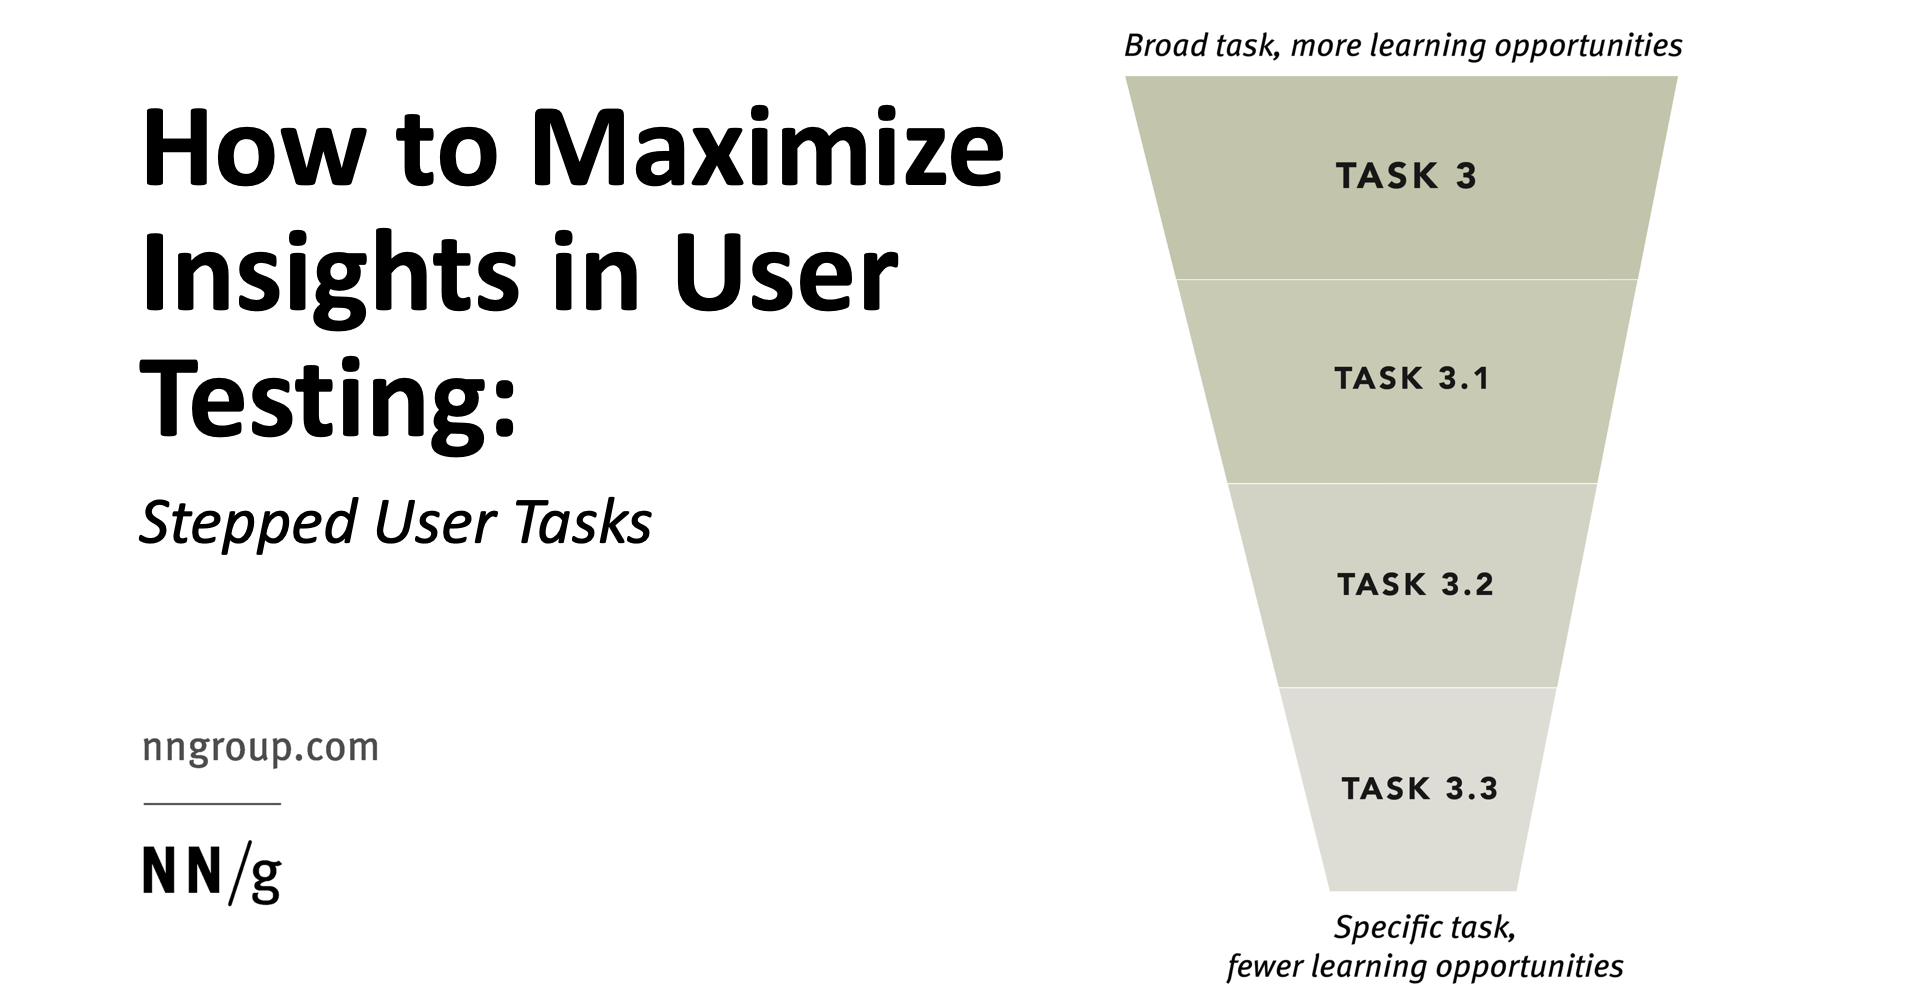 How to Maximize Insights in User Testing: Stepped User Tasks